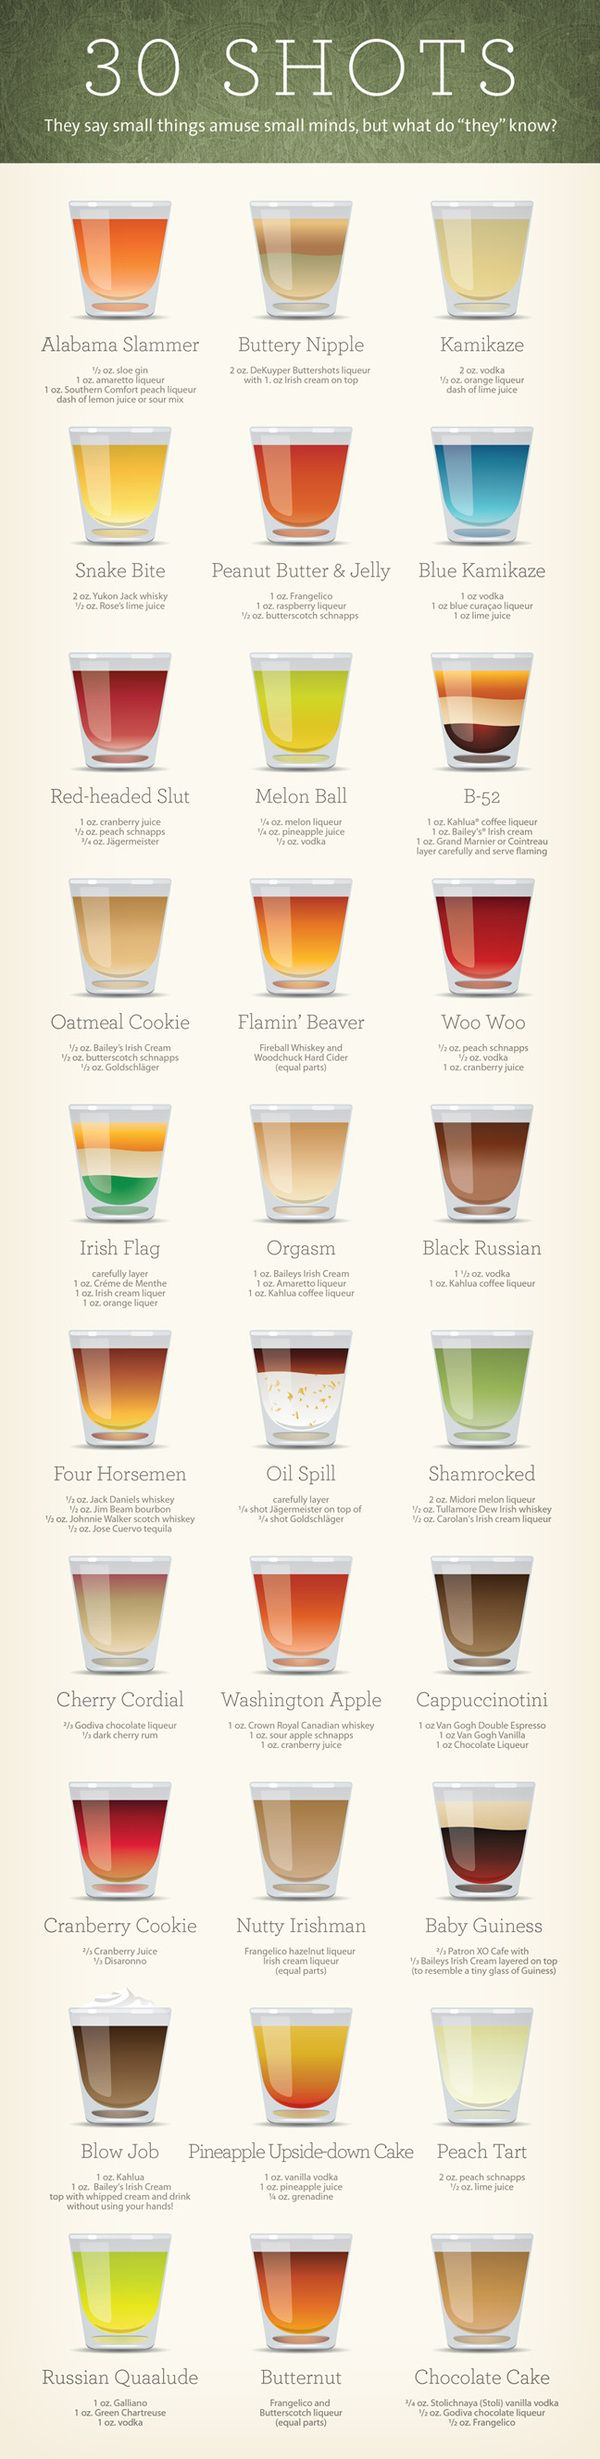 30 delicious shots! Good to know! (My favorite is on there)